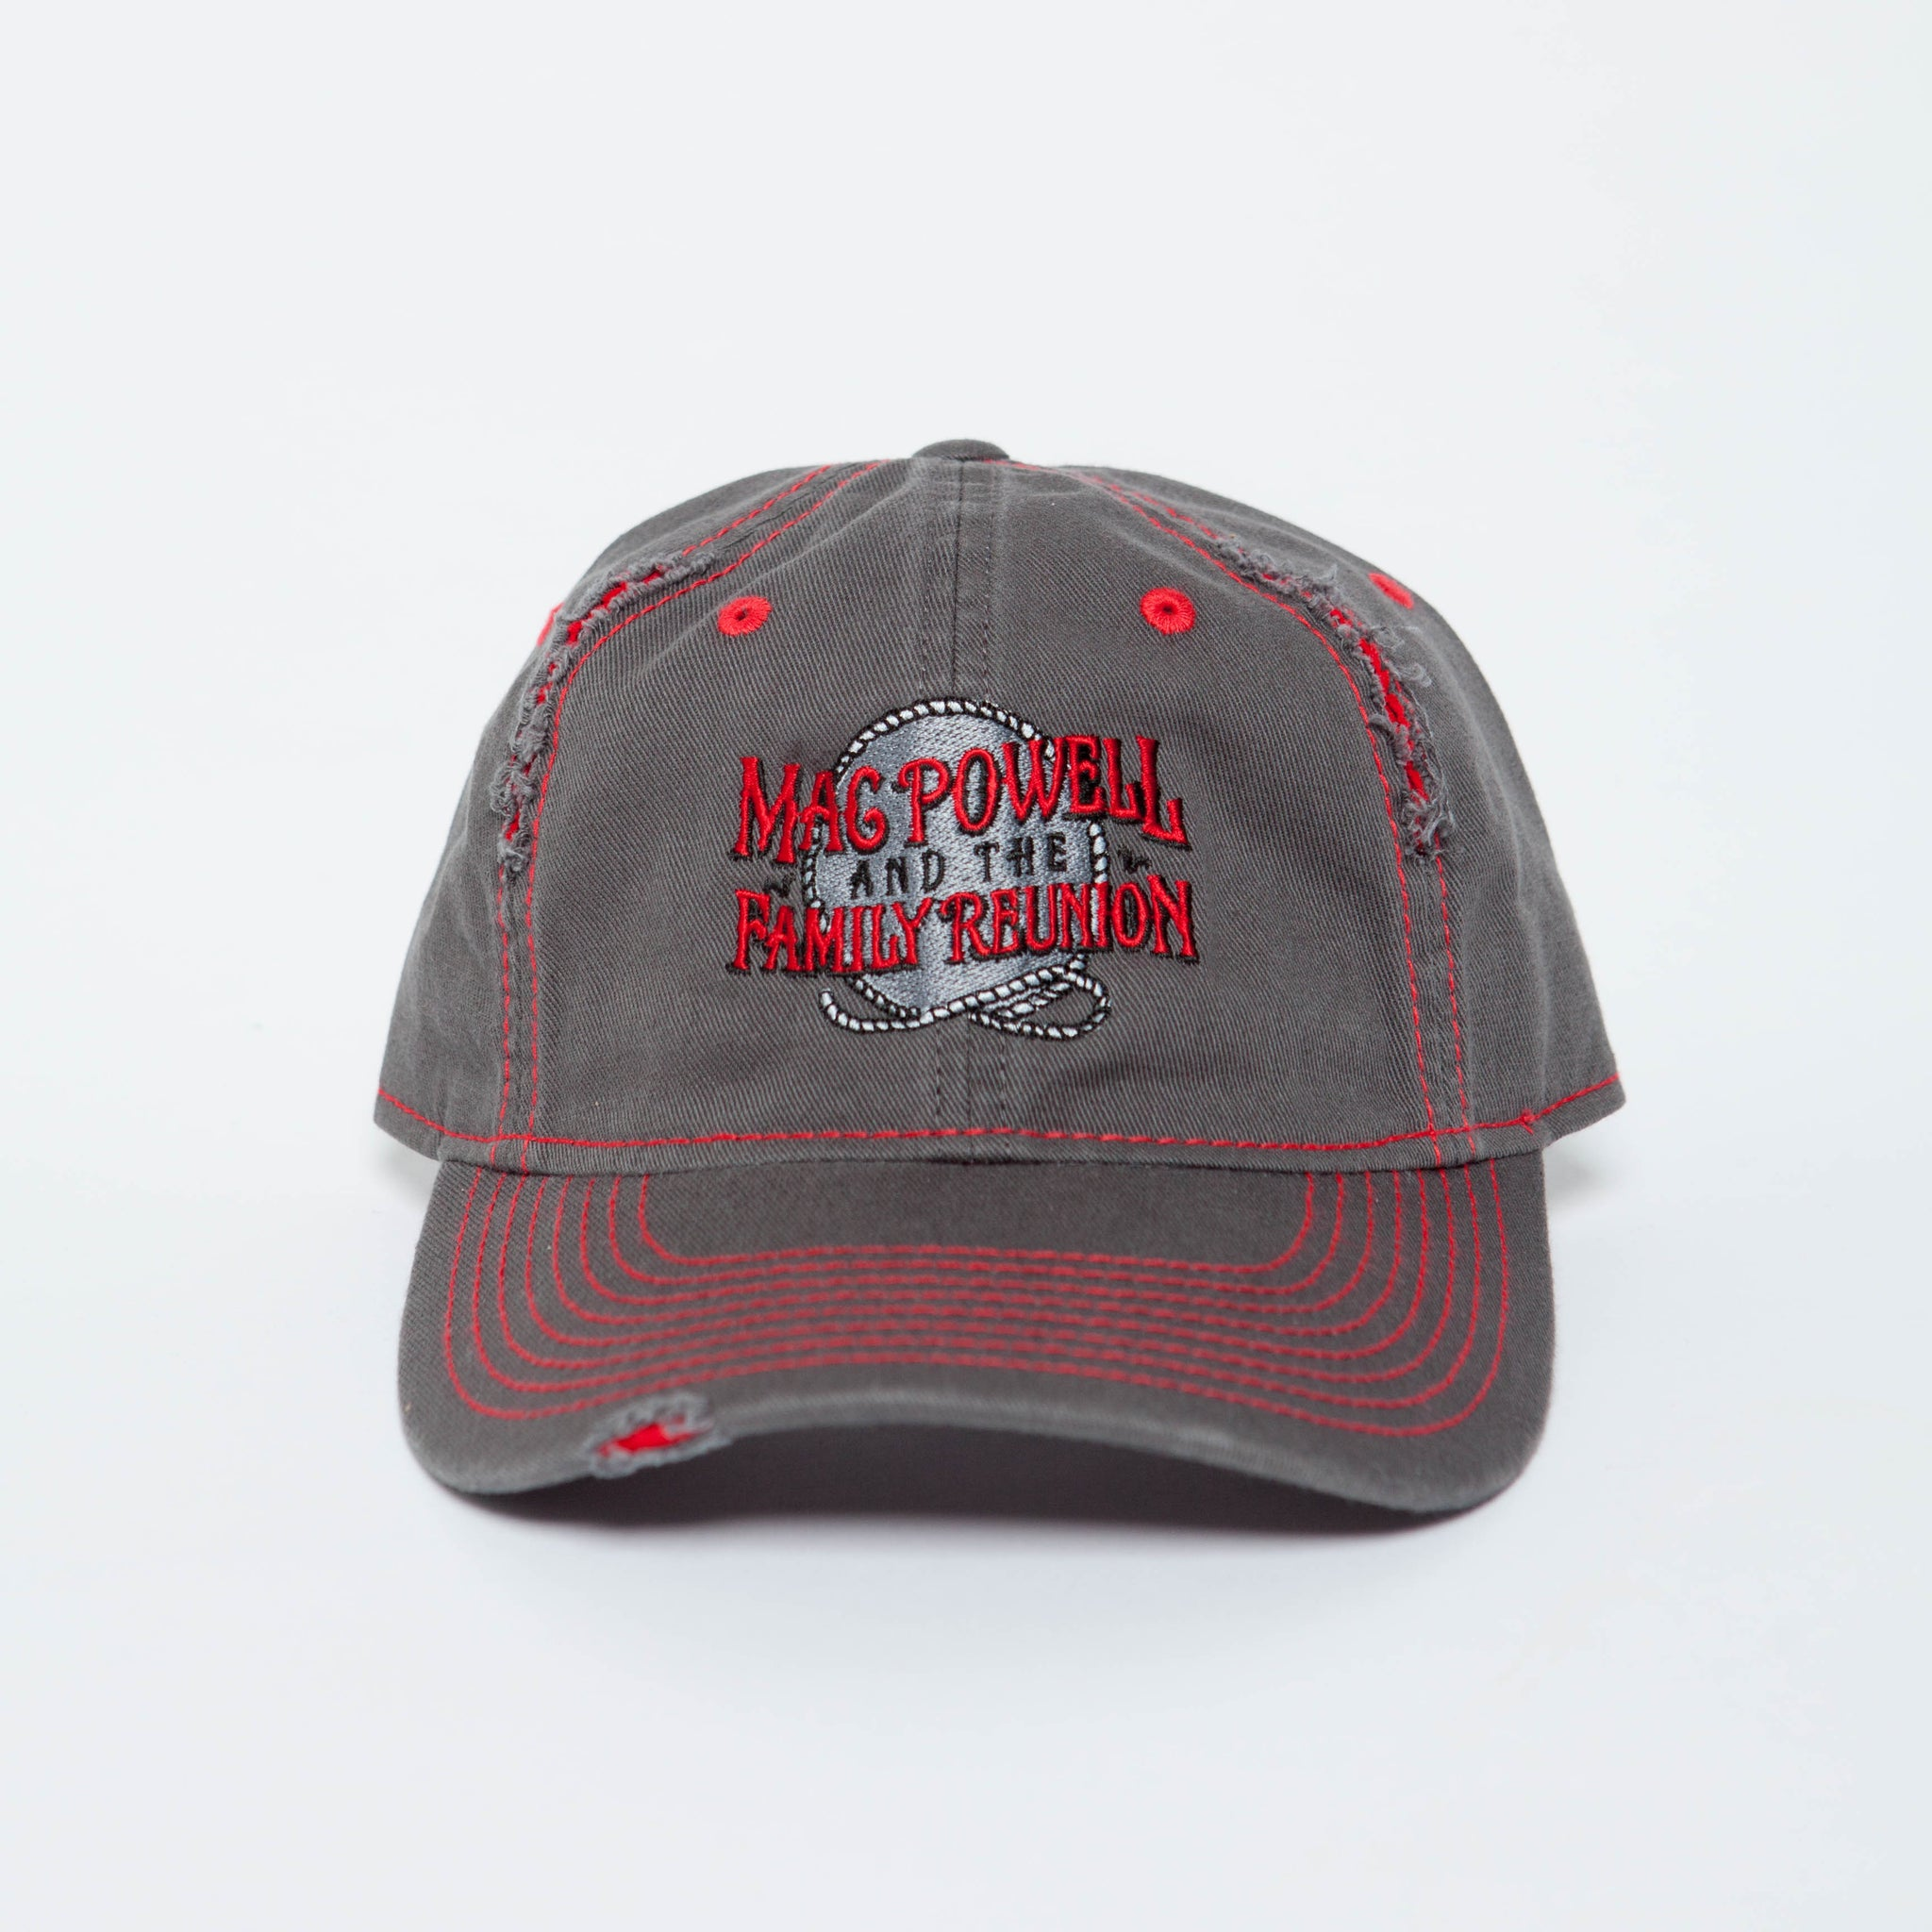 Close up of a Mac Powell distressed gray and red hat.